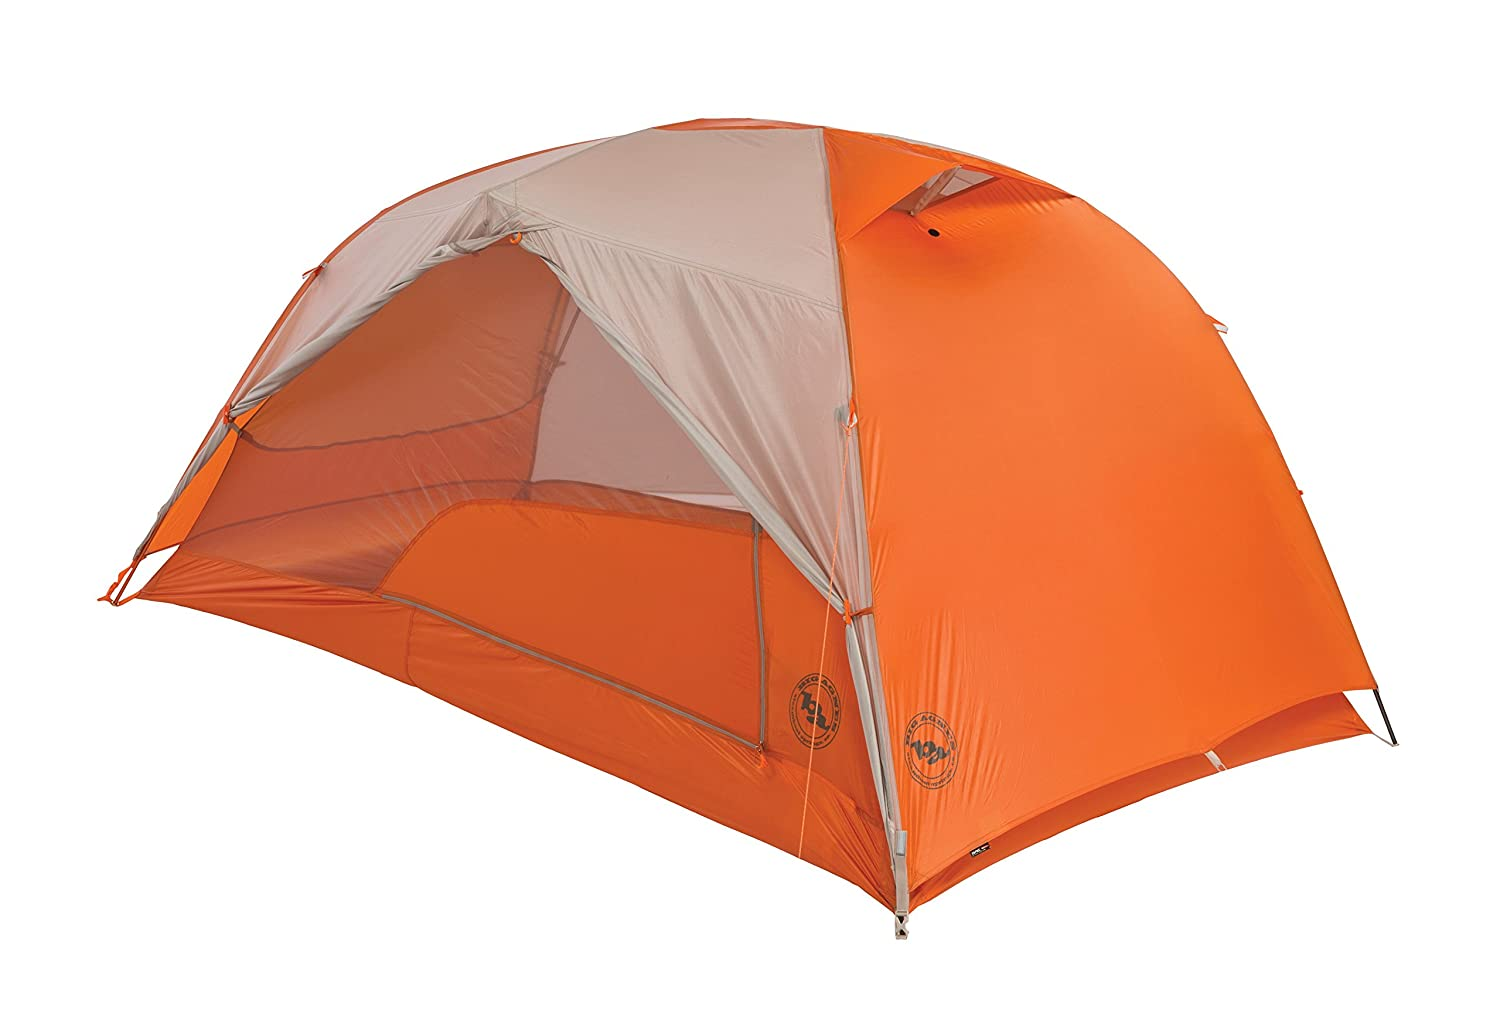 Big Agnes Copper Hotel HV2 UL Camping Tent Black Friday 2020 Deals